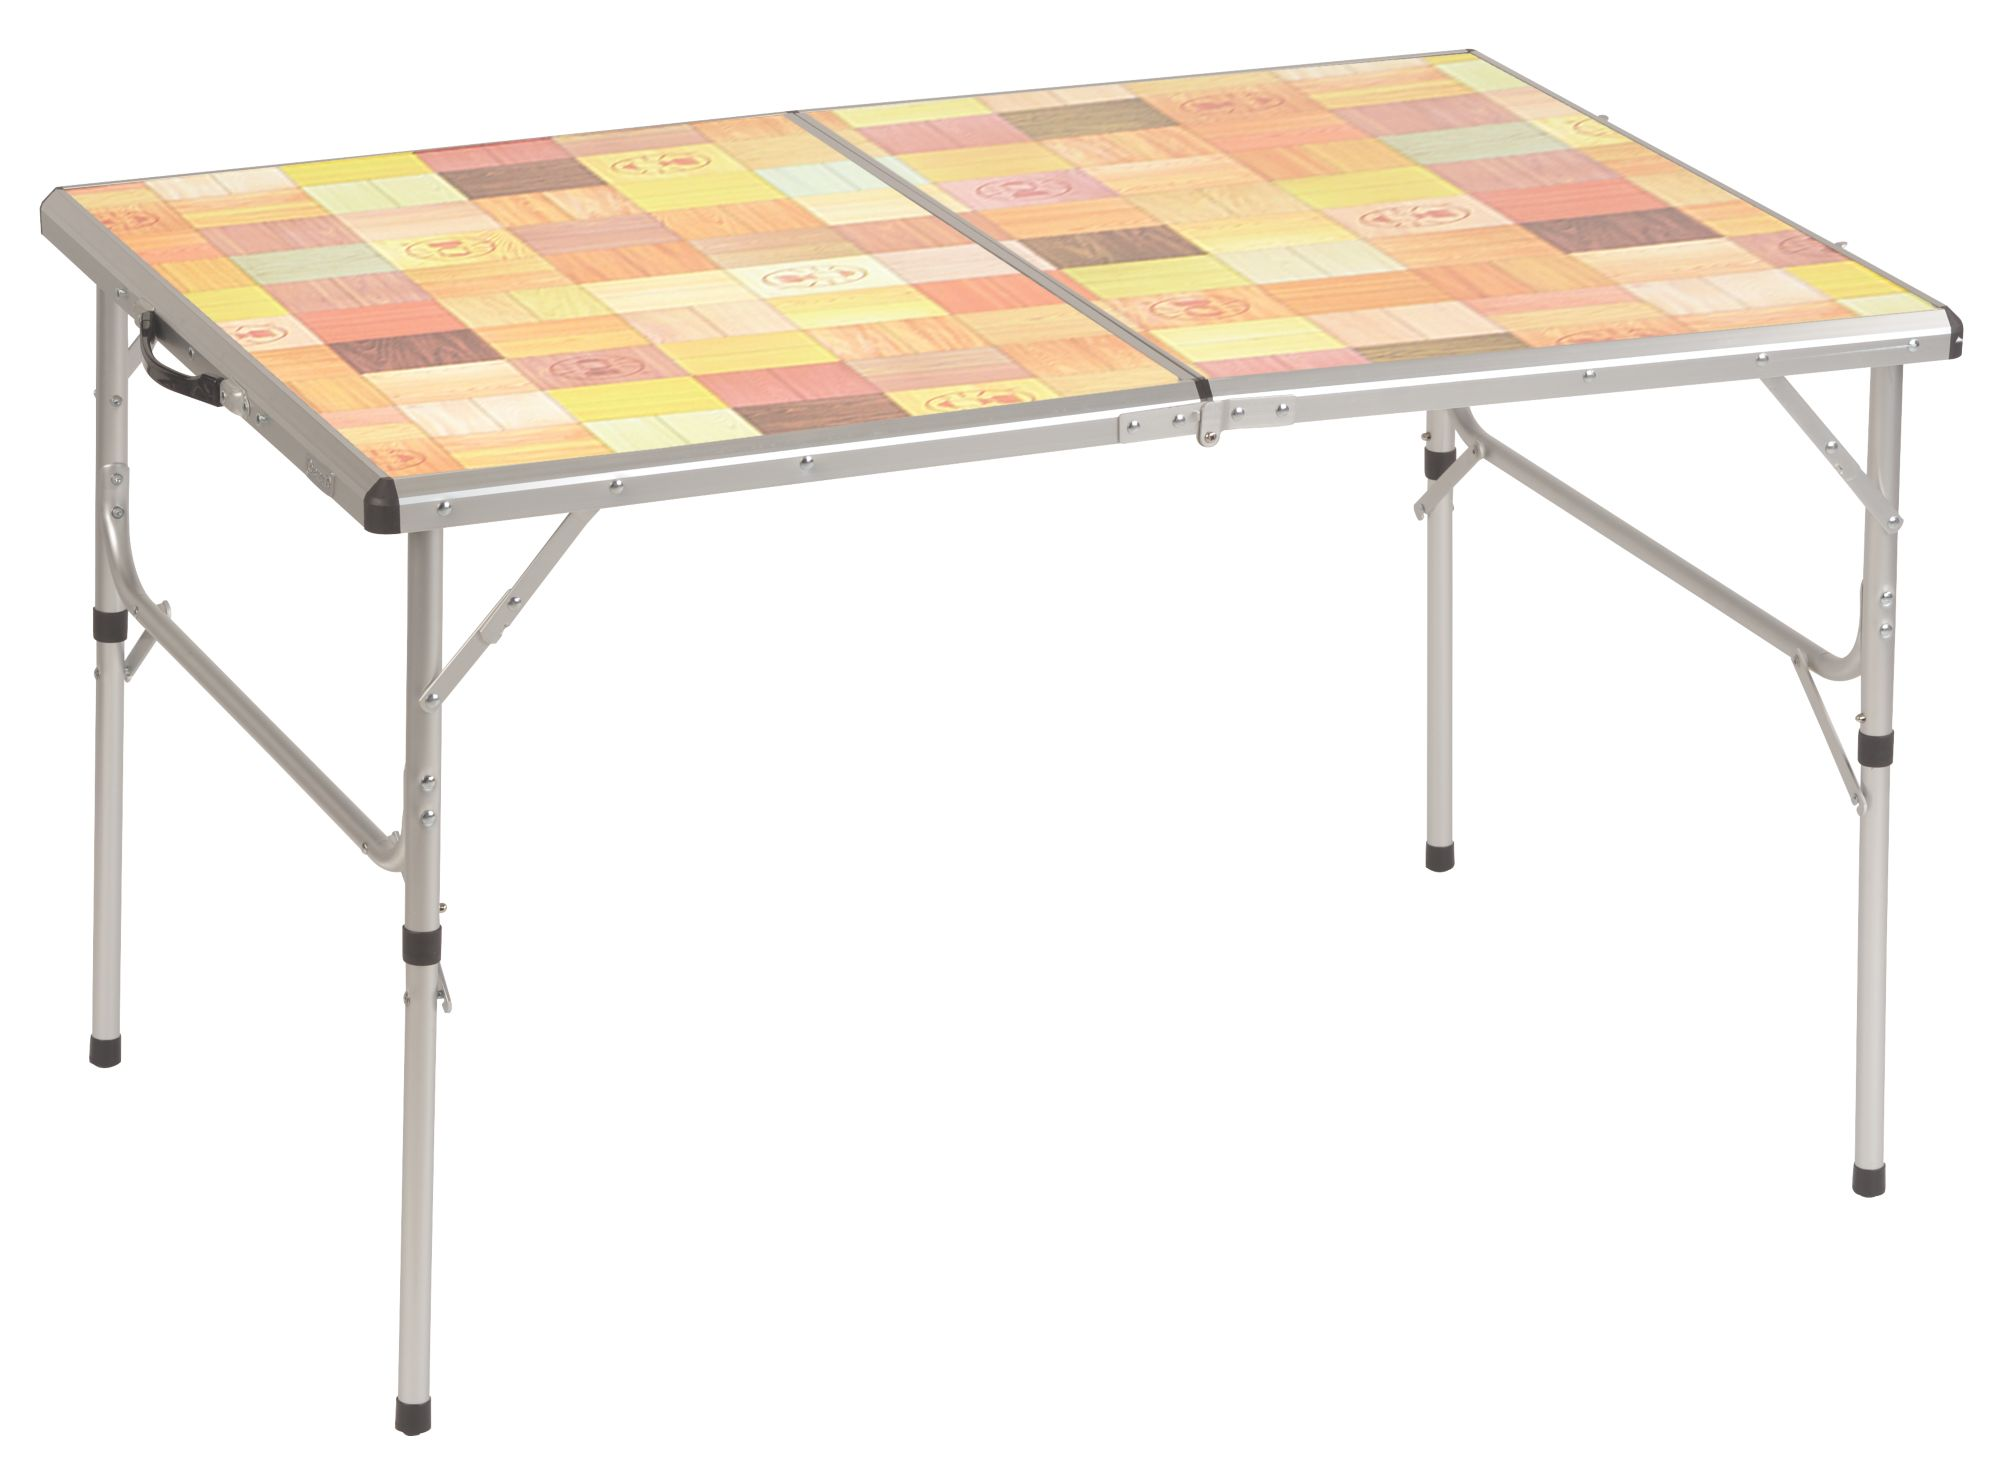 Outdoor Folding Tables pact Folding Table